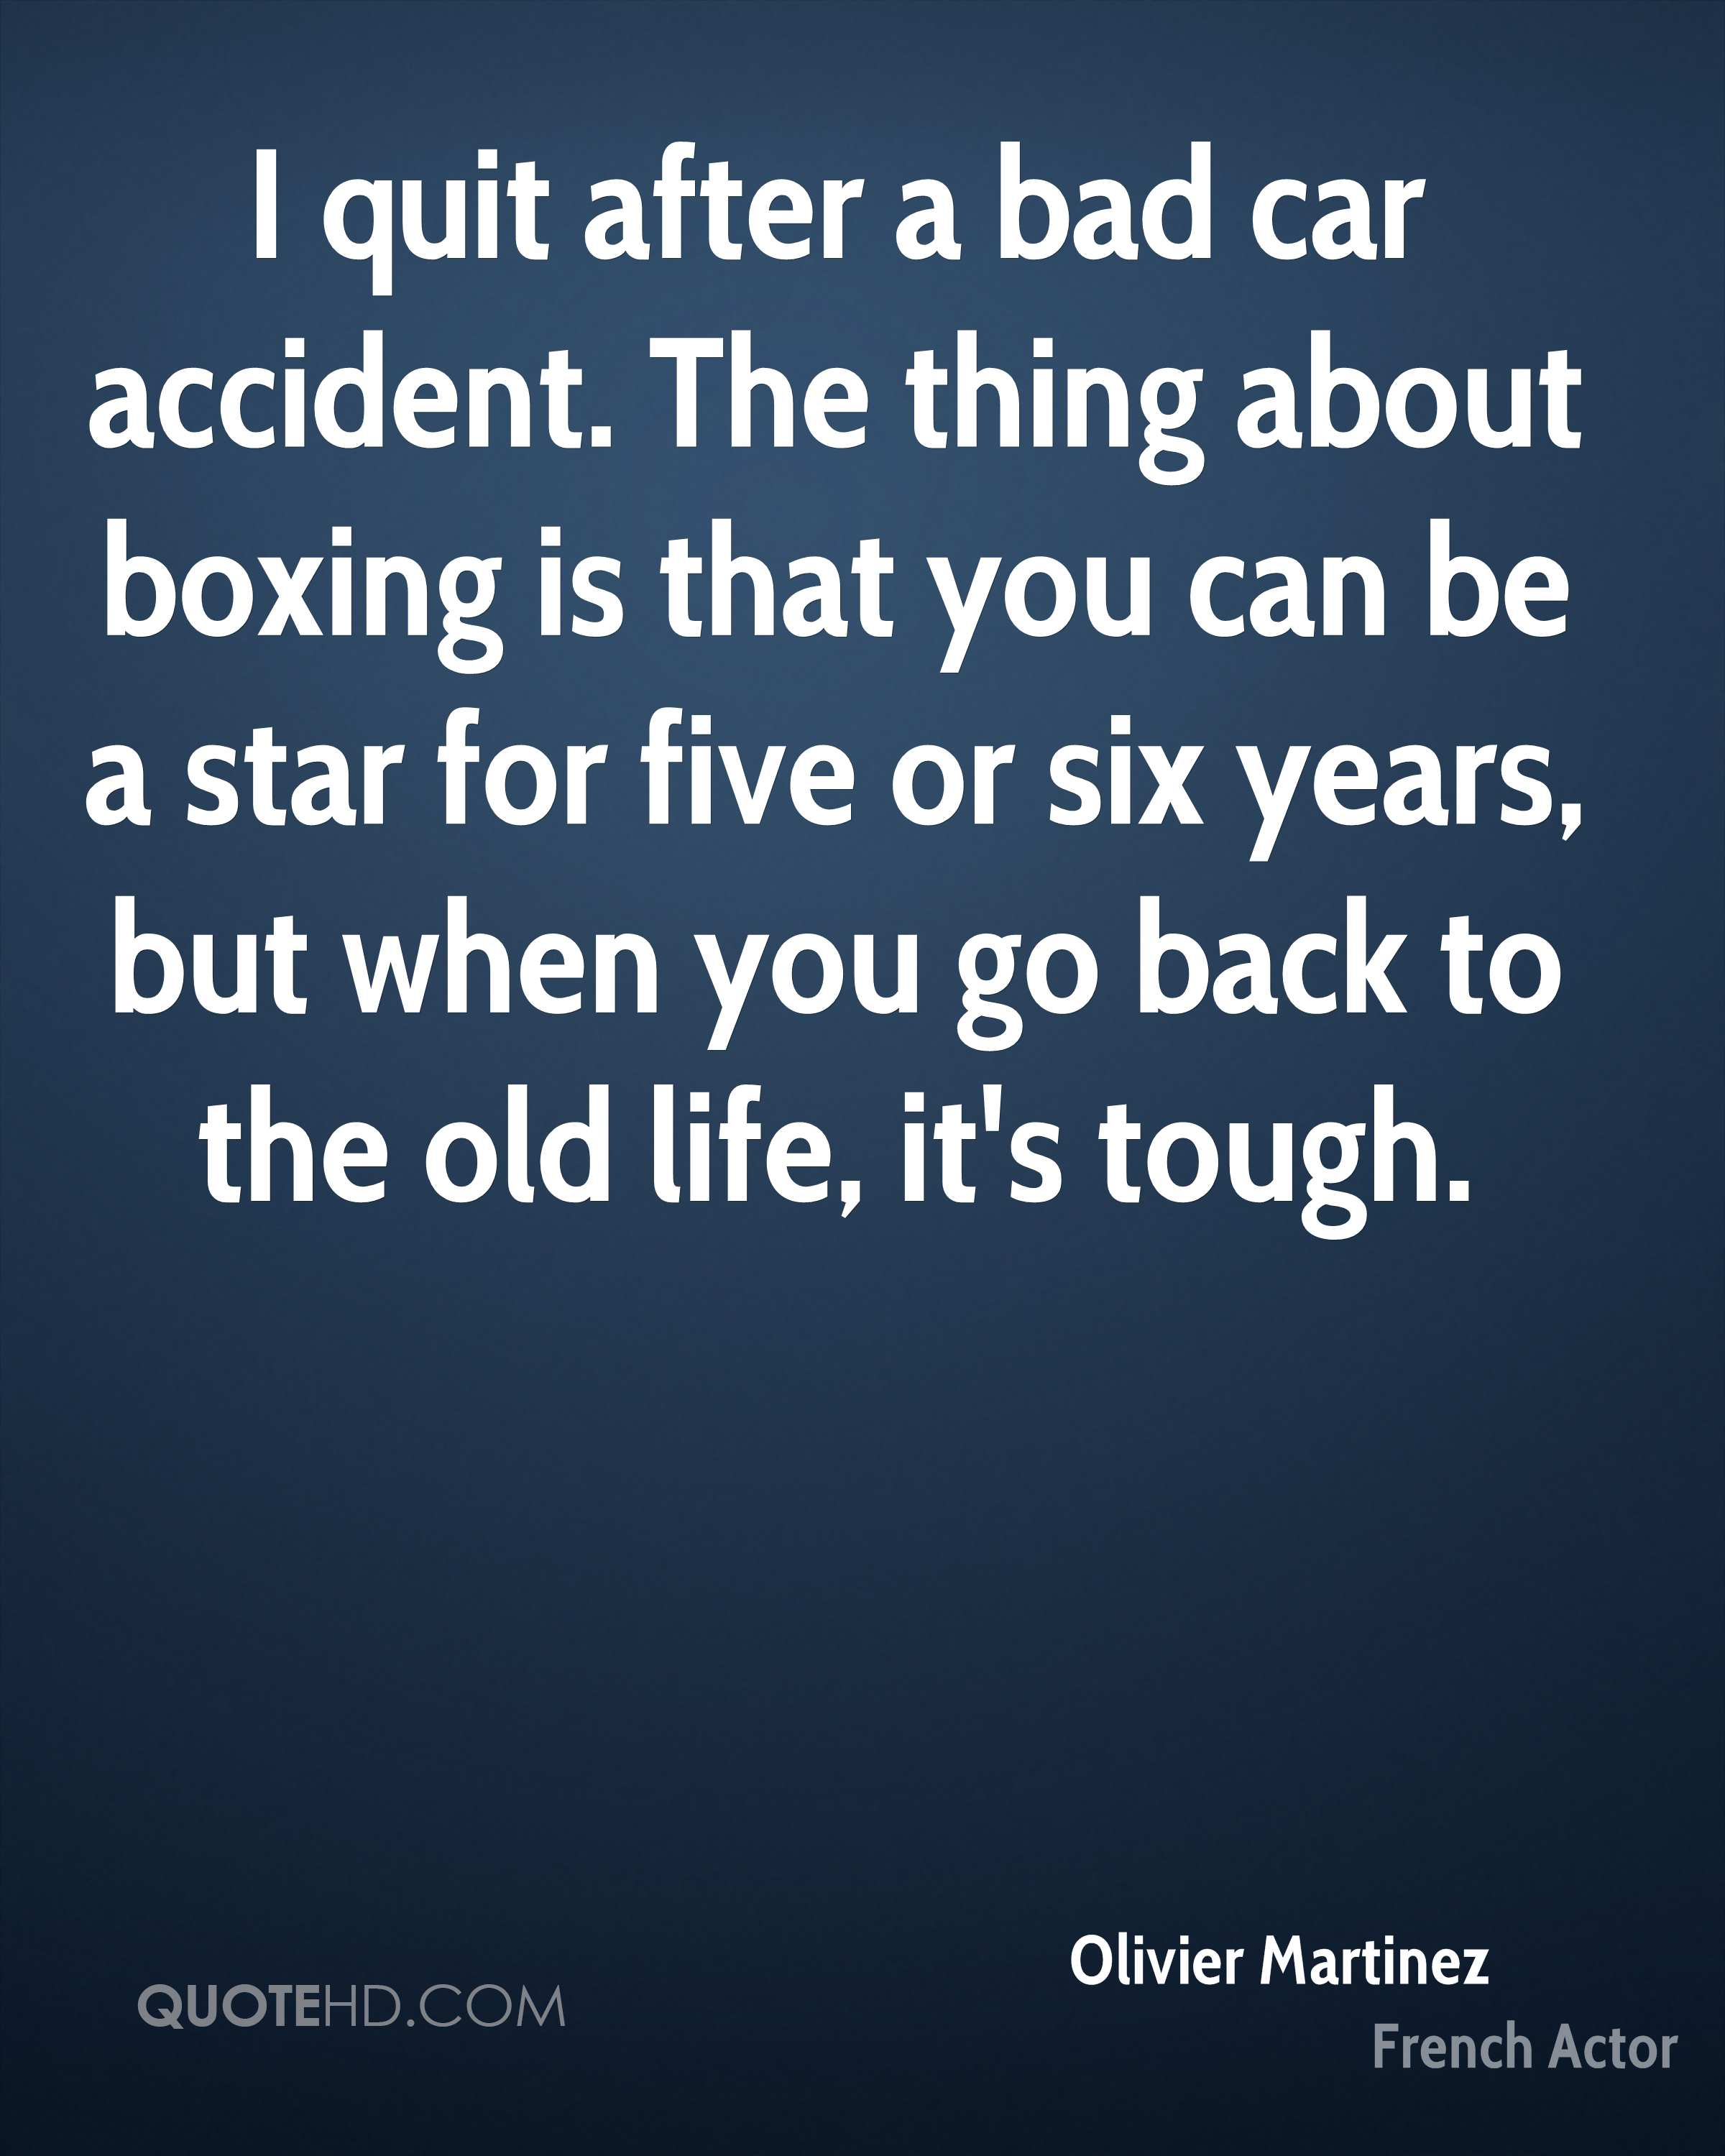 I quit after a bad car accident. The thing about boxing is that you can be a star for five or six years, but when you go back to the old life, it's tough.